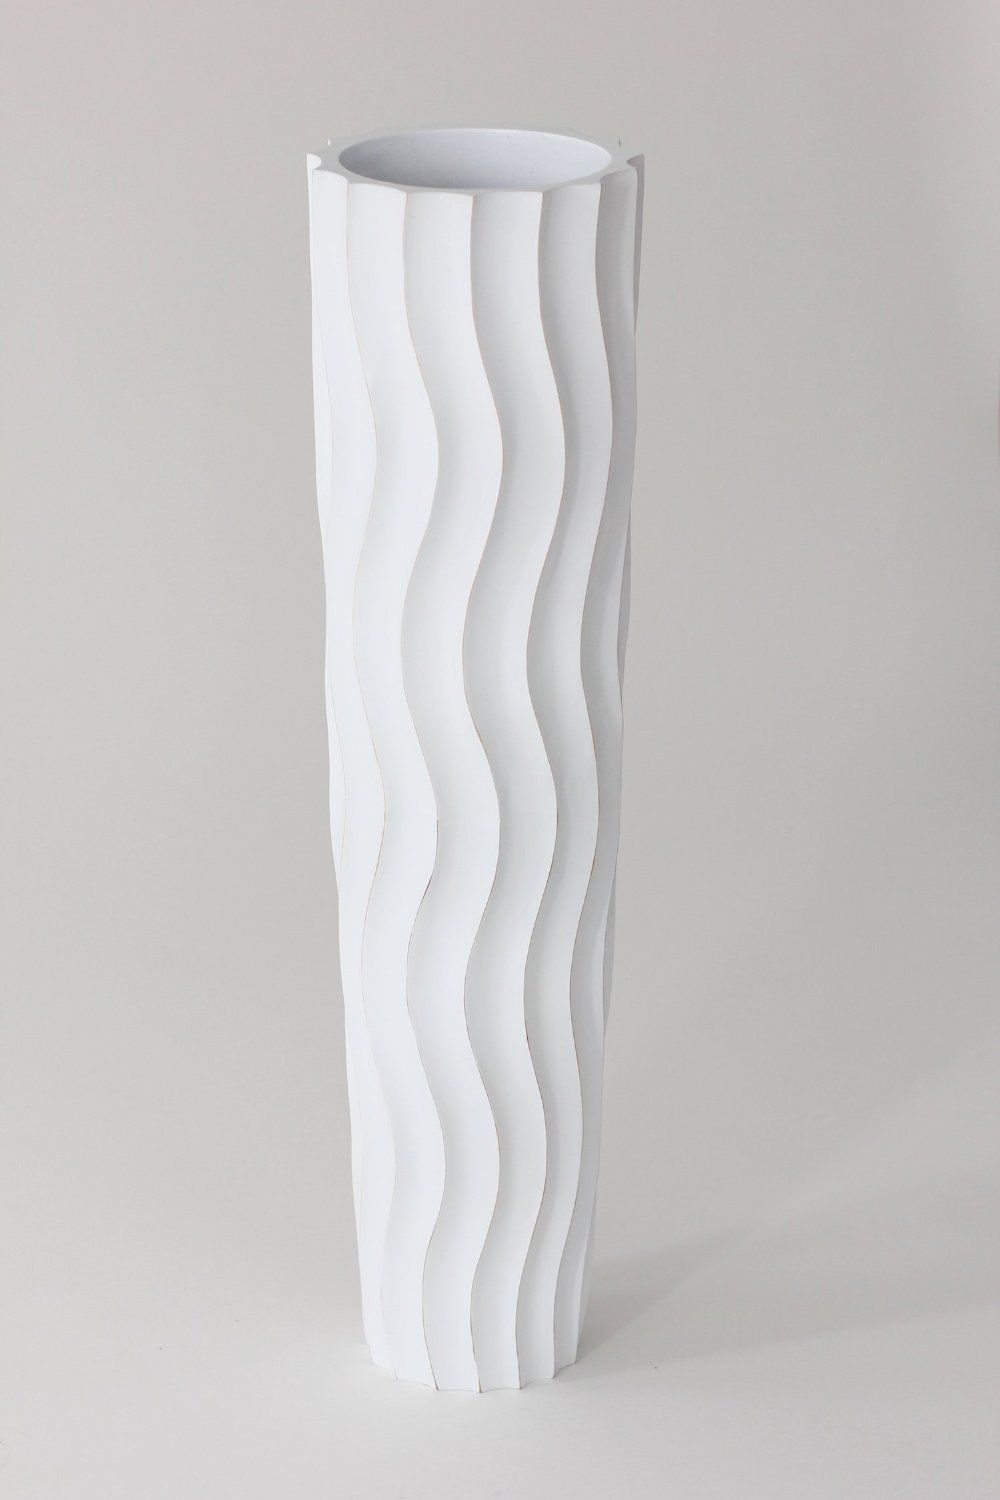 Tall floor vase 75 cm mango wood white amazon lighting tall floor vase 75 cm mango wood white amazon lighting izmirmasajfo